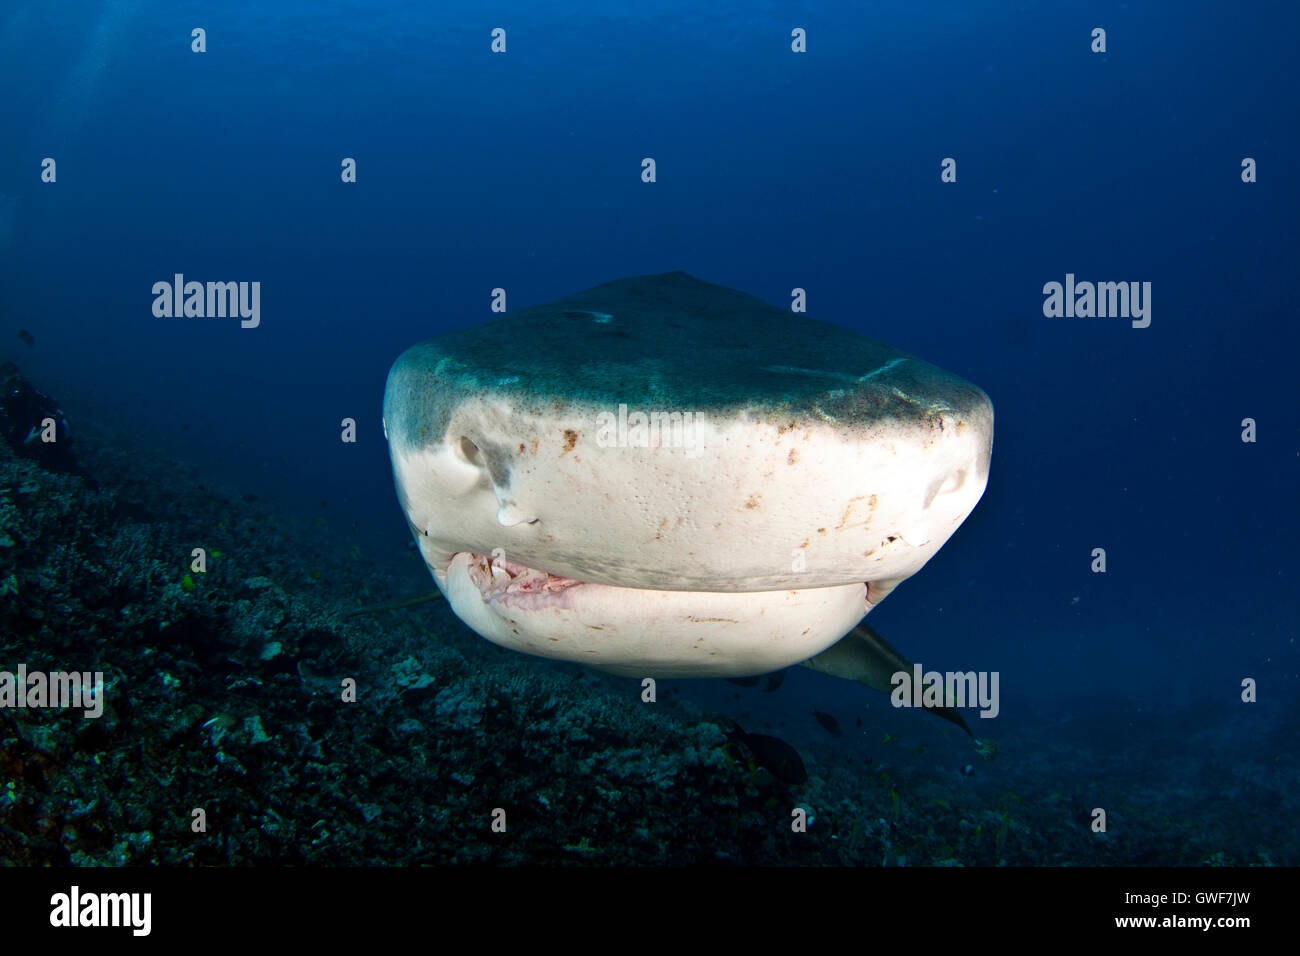 A tiger shark swims over the reef at Kona, Hawaii - Stock Image